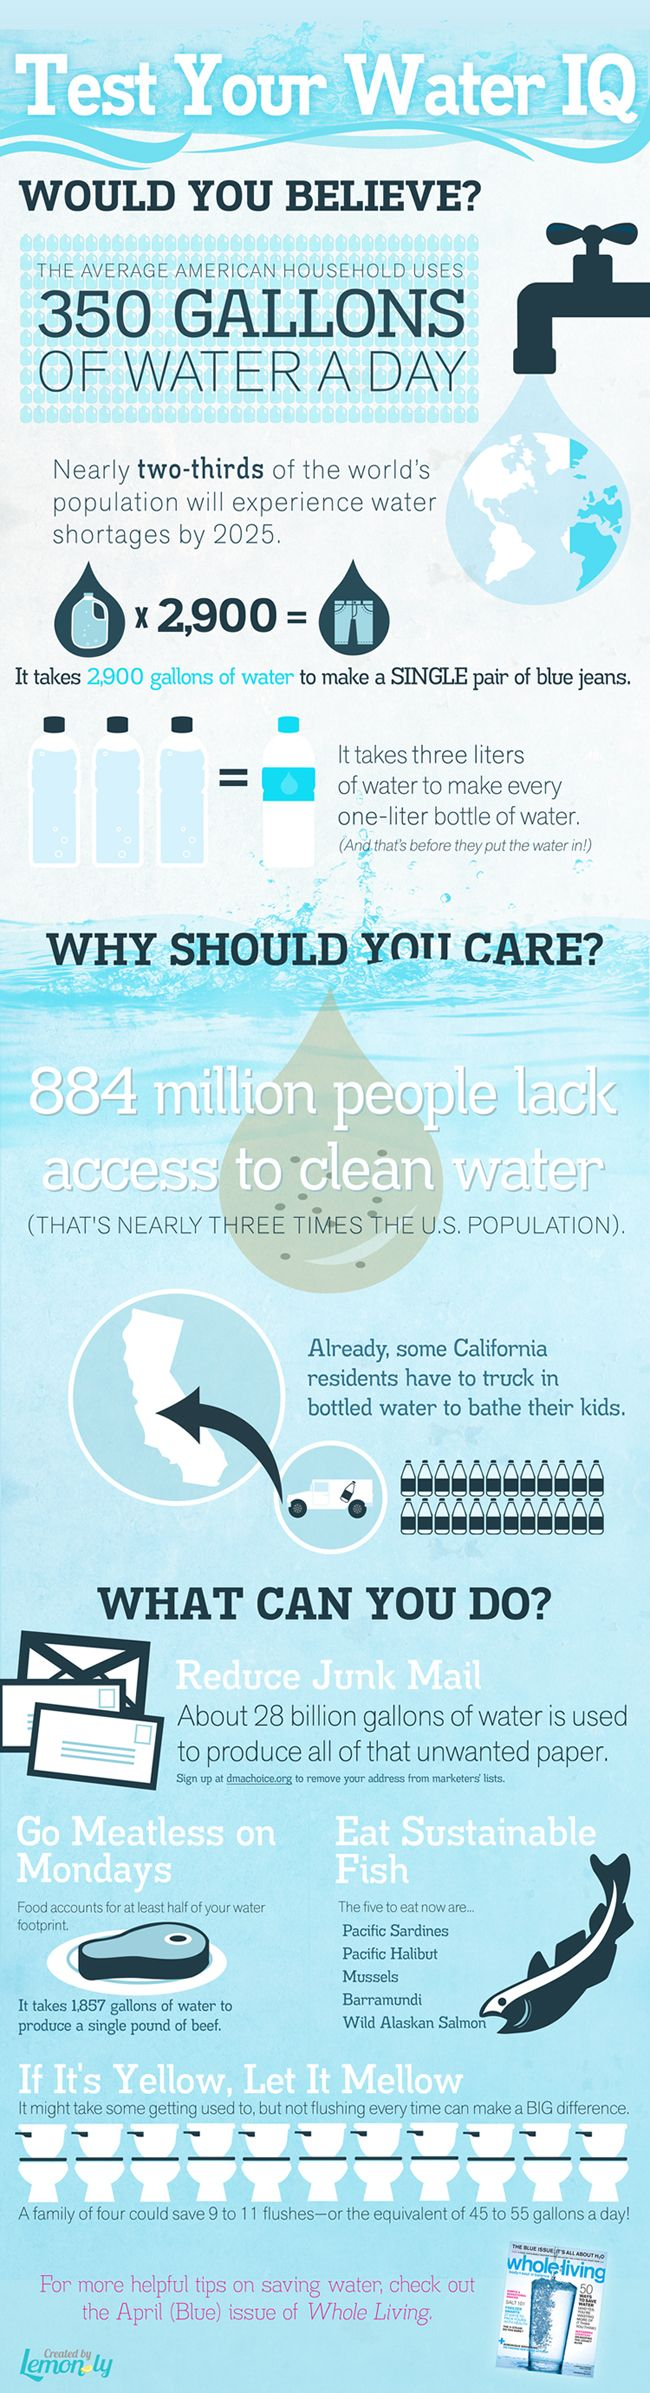 Repin if you're committed to saving H20, Wholeliving.com #waterday